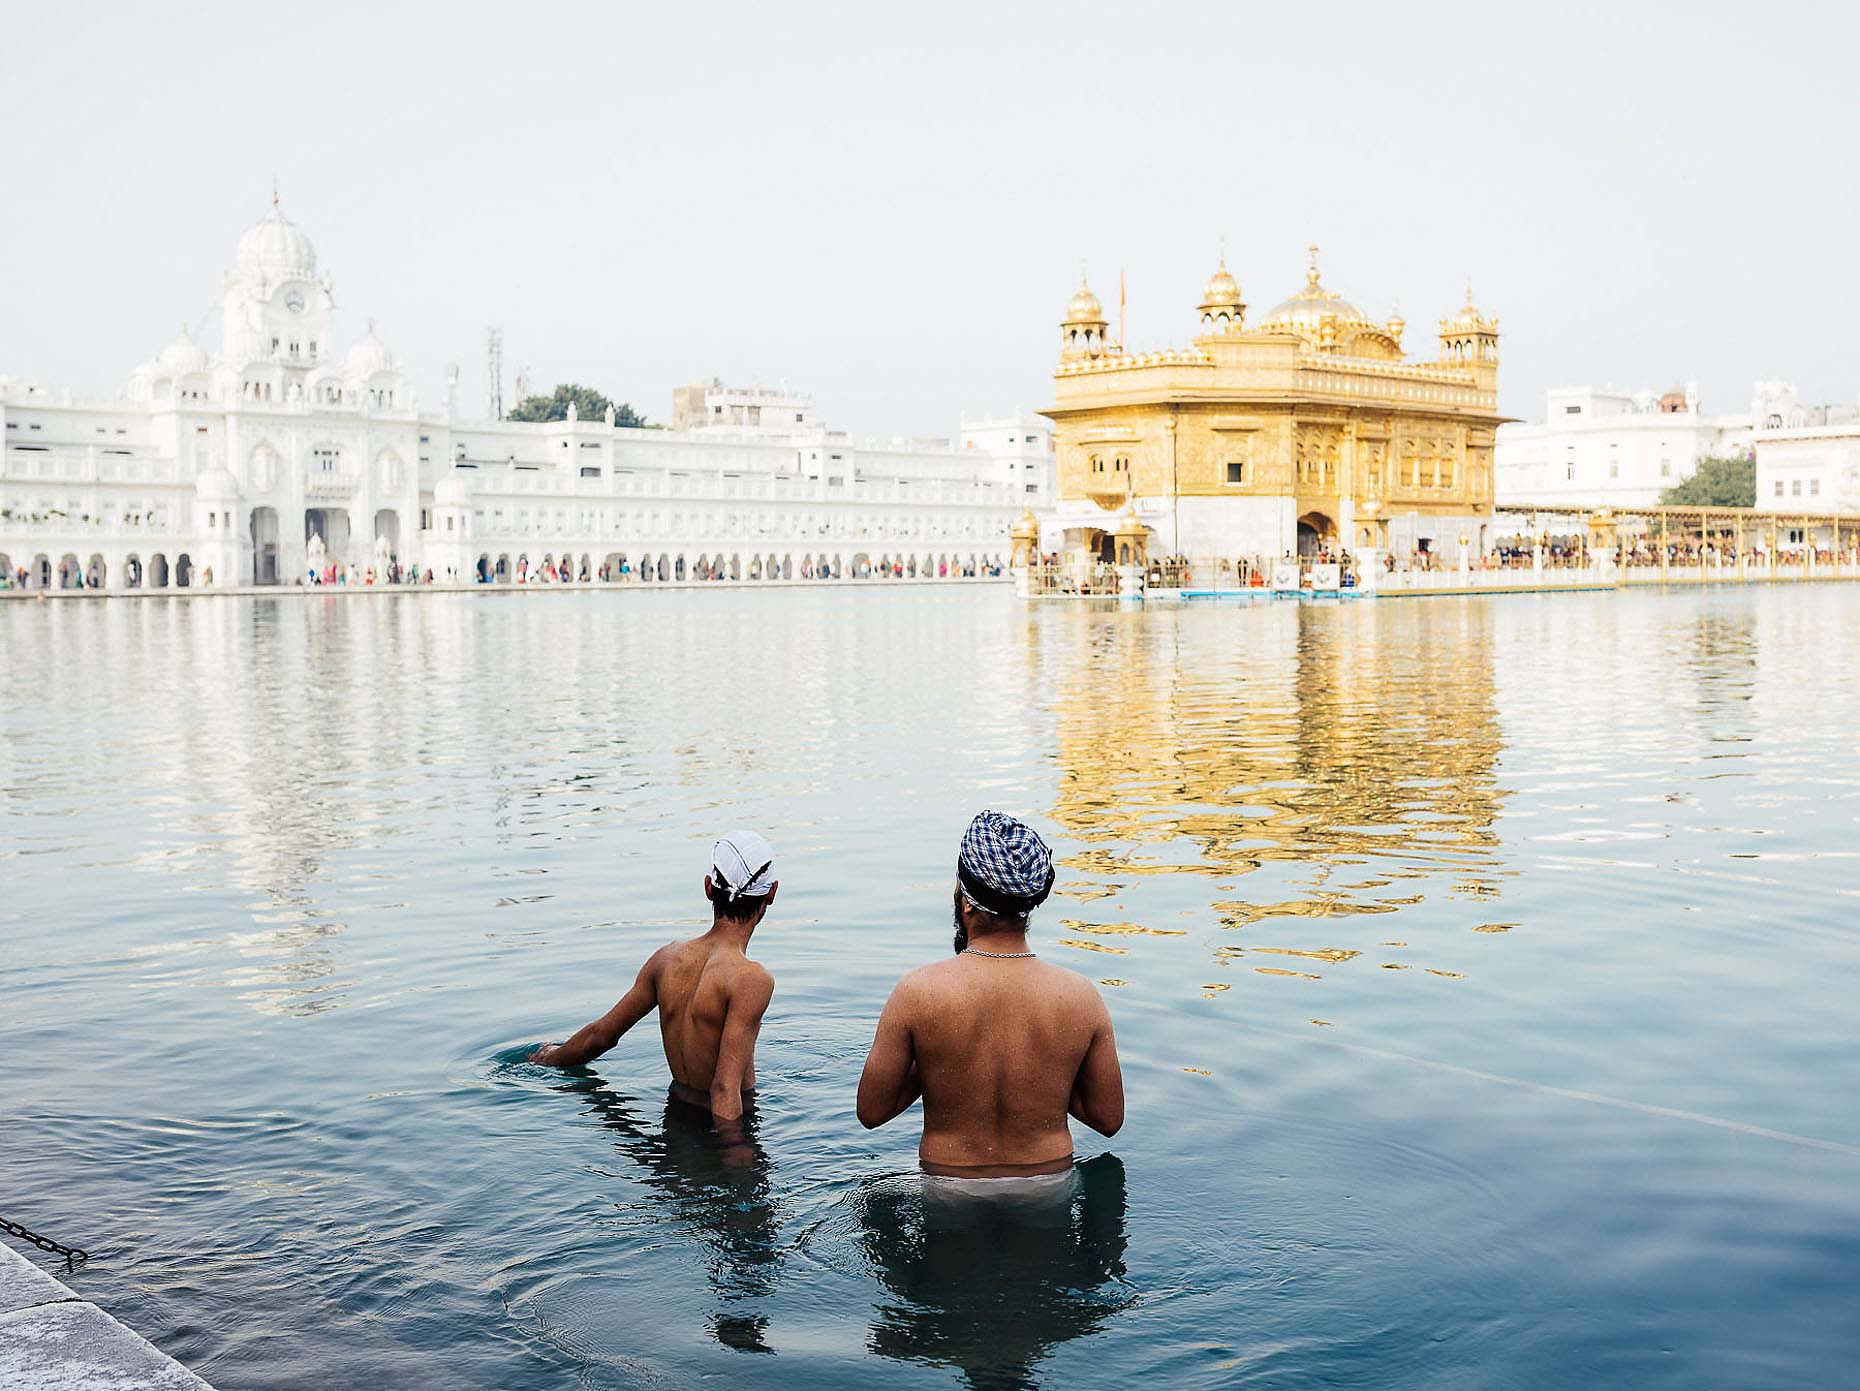 men-bathing-pool-golden-temple-amritsar-india-05